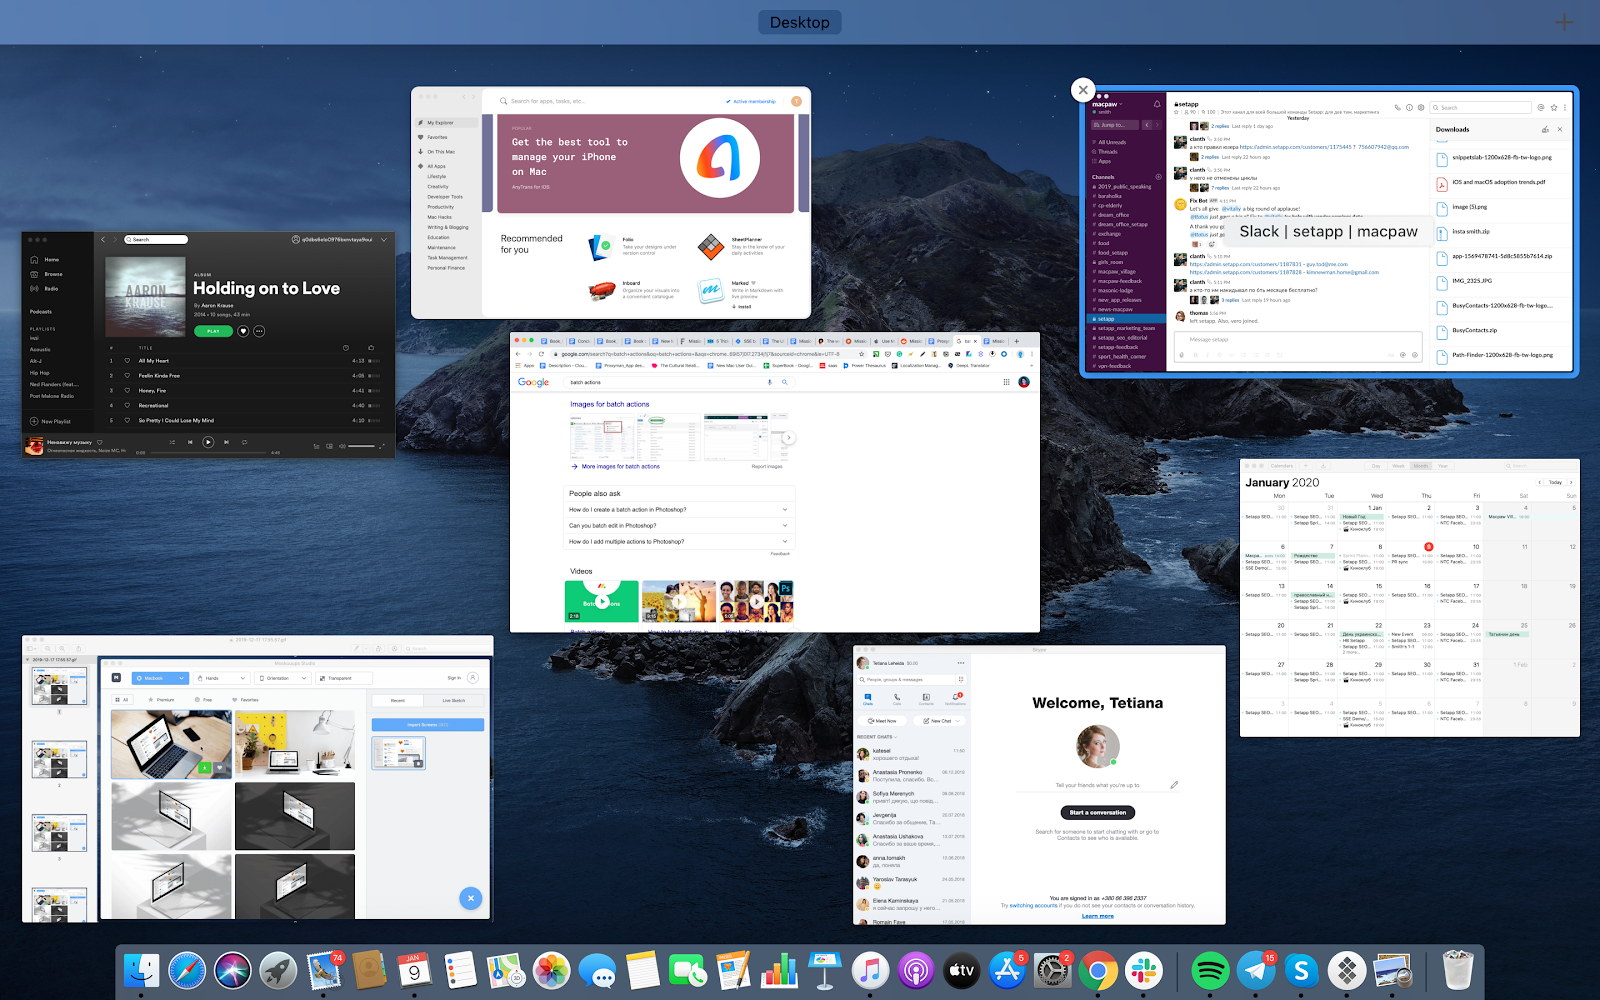 Organize your window from Mission Control